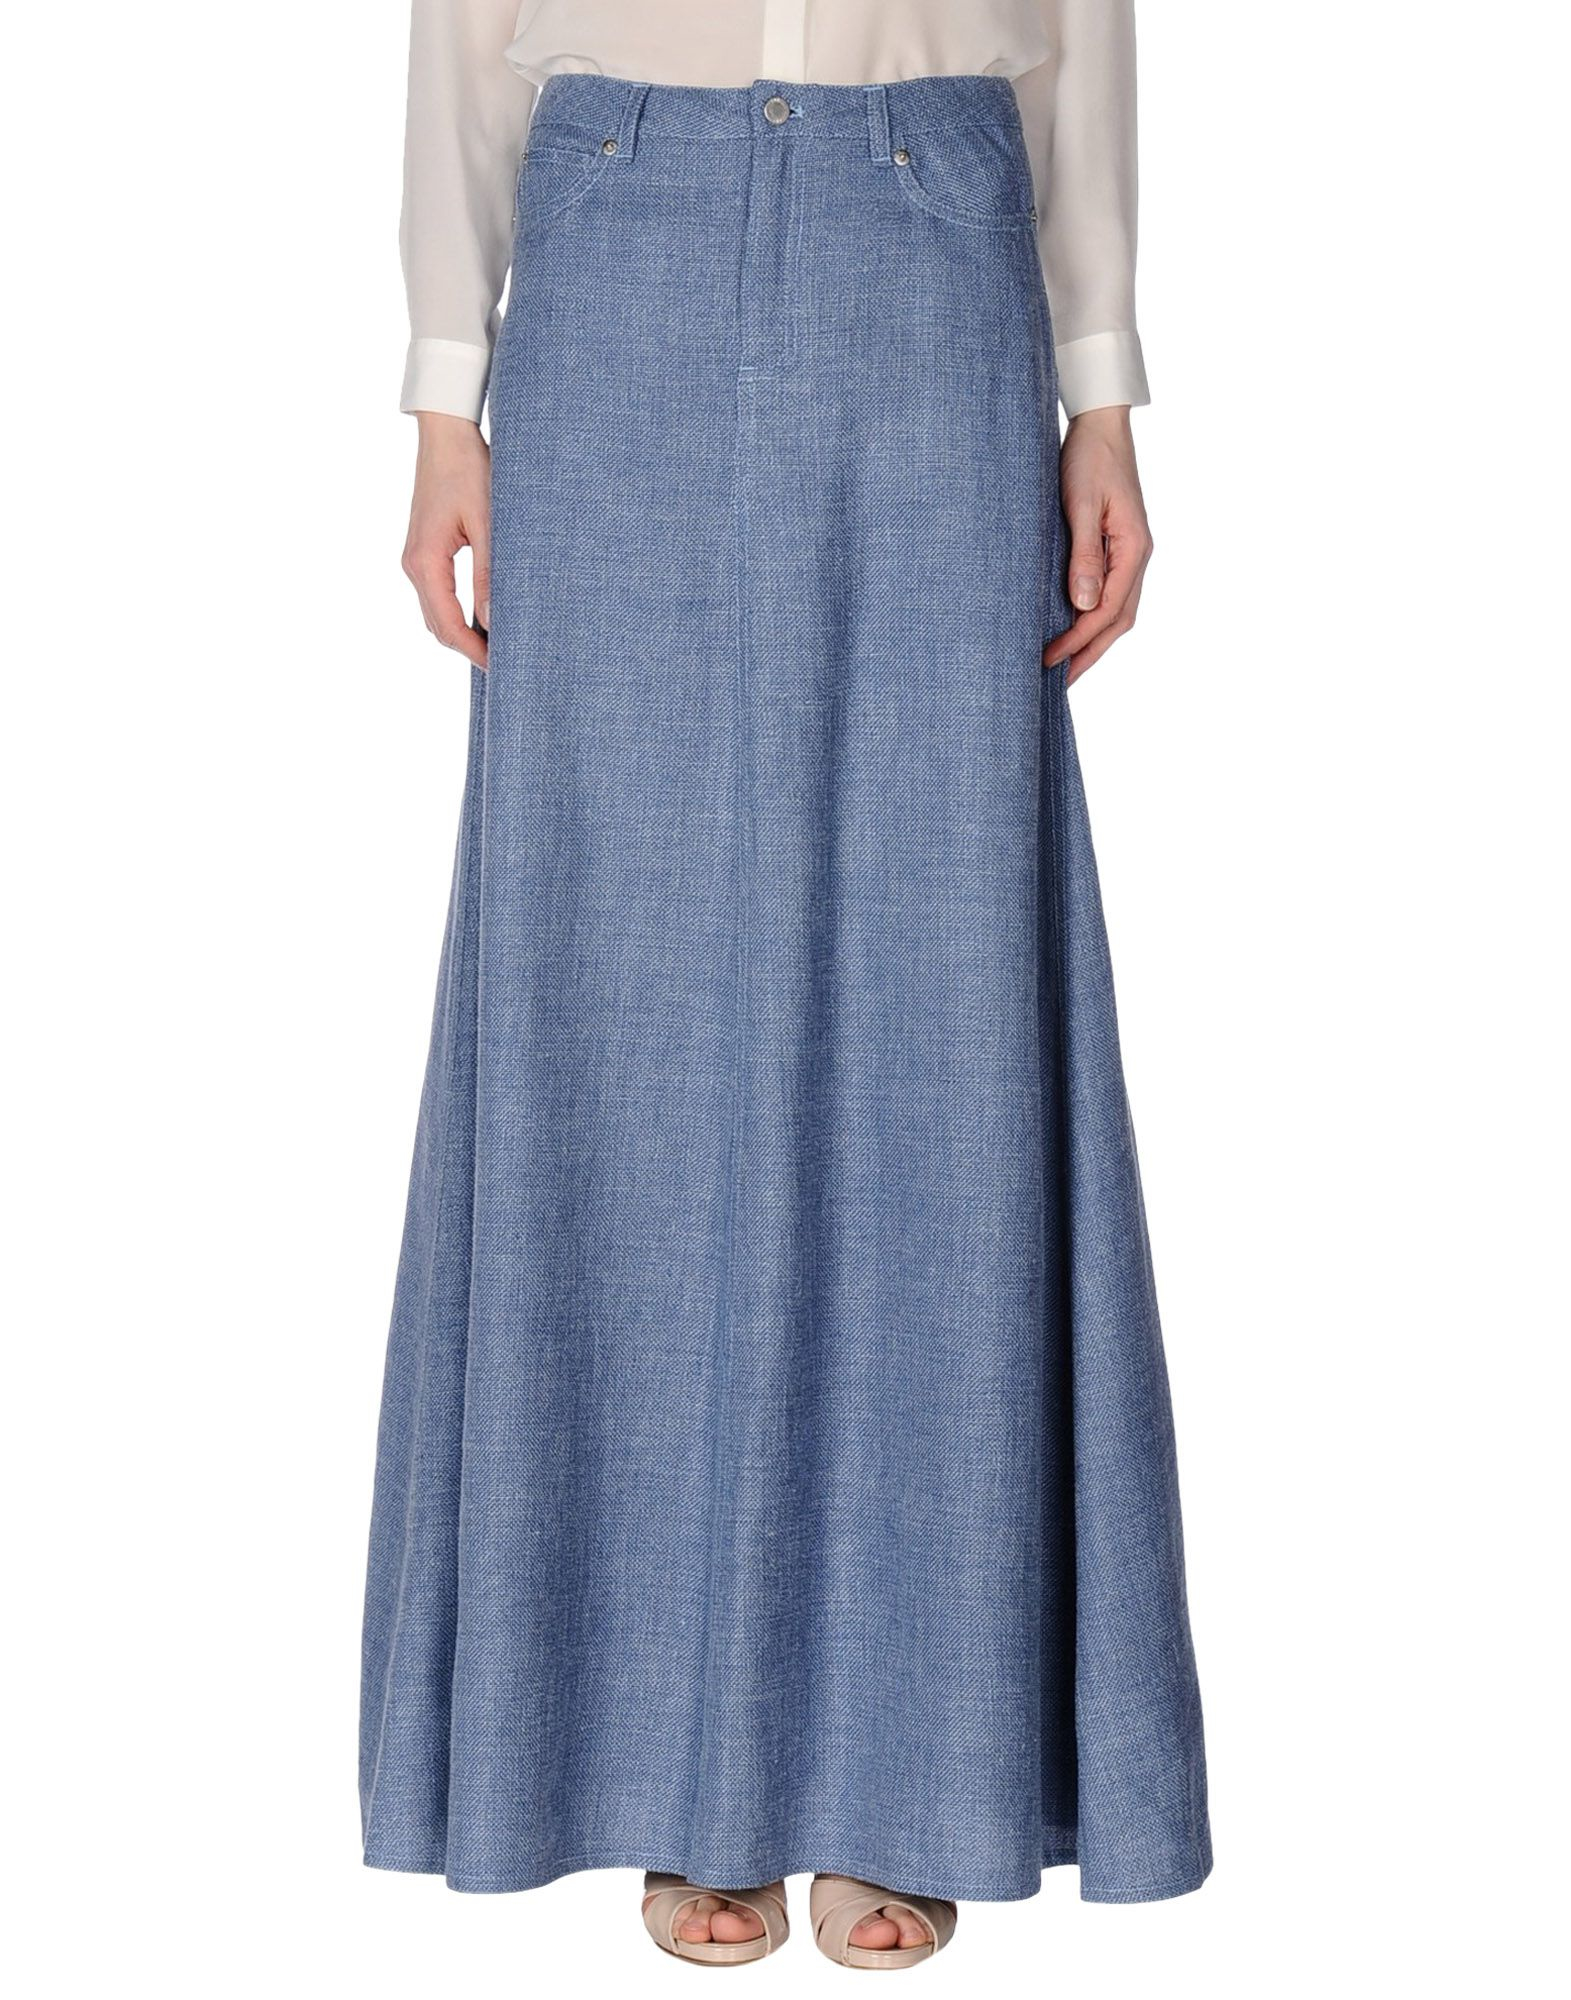 Find great deals on eBay for navy blue long skirt. Shop with confidence.